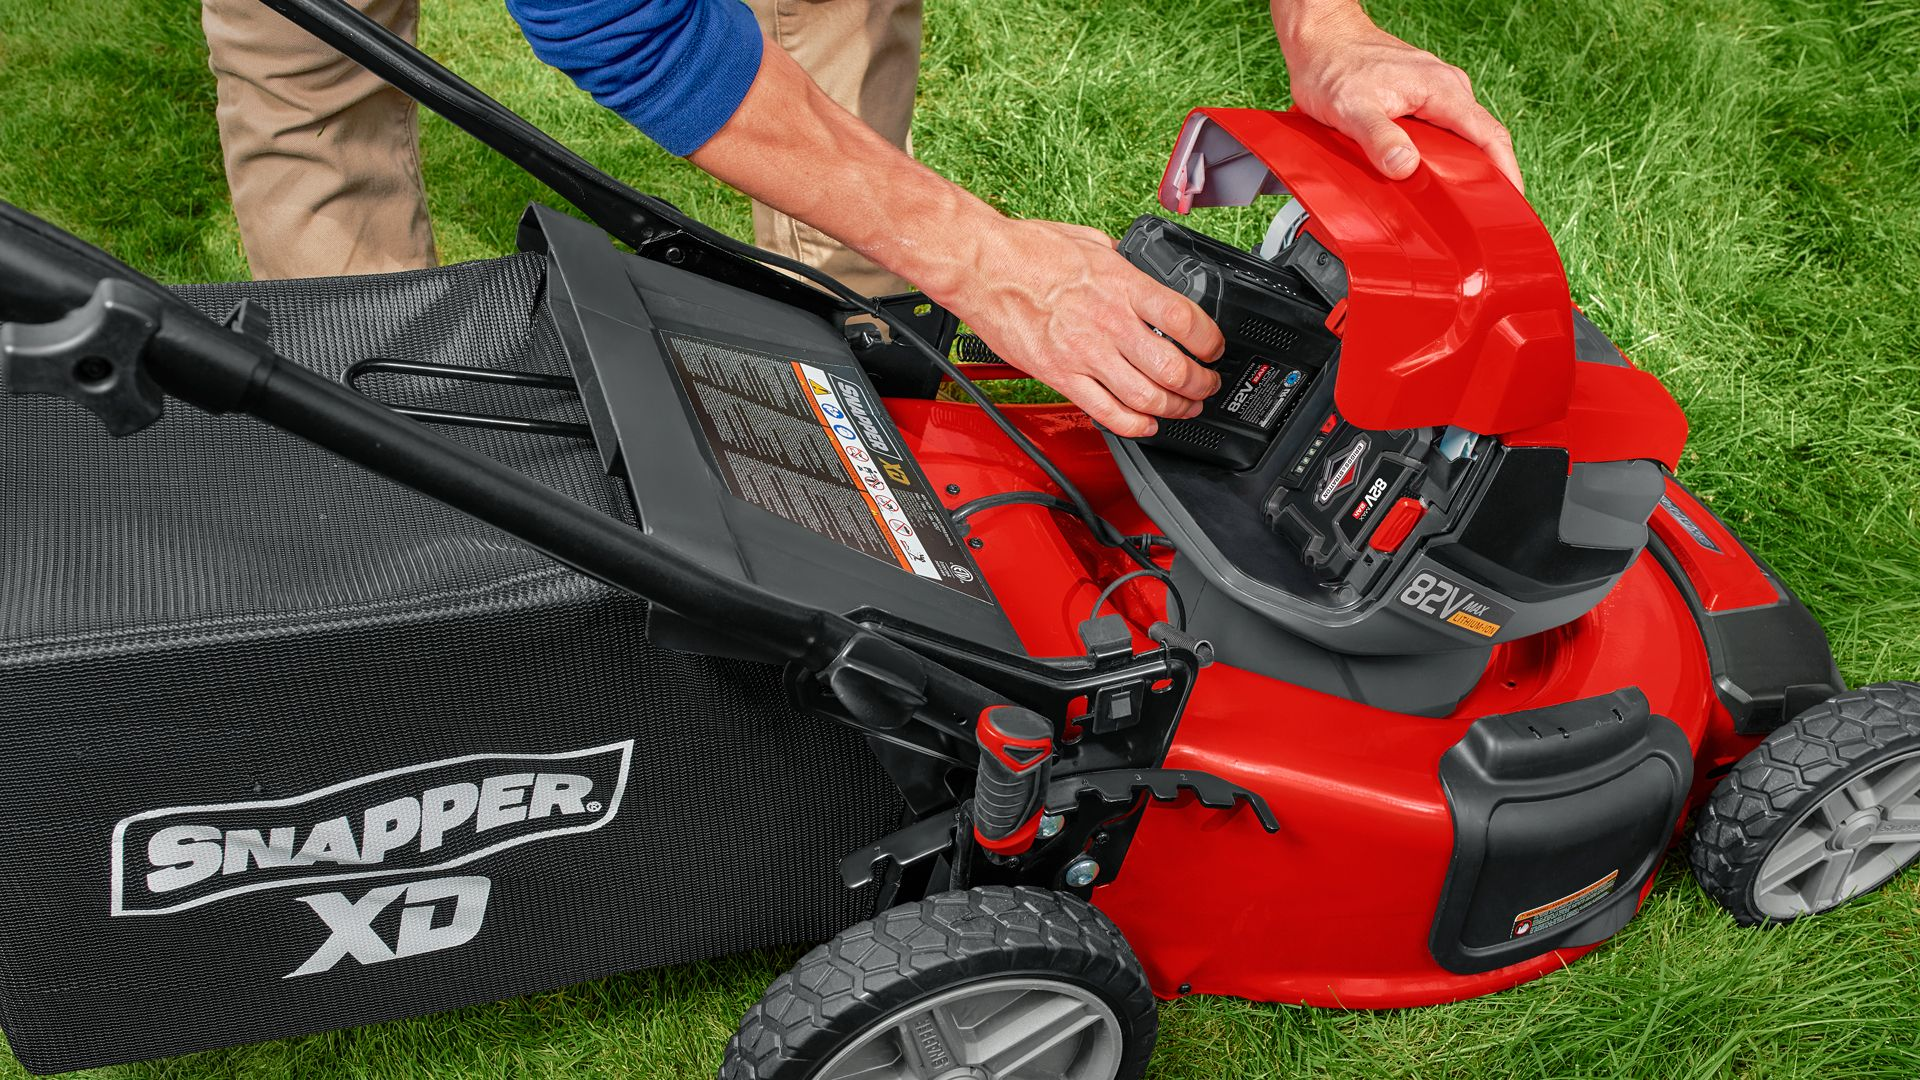 Snapper XD 82V Review - Snapper's Battery Powered Lawn Mower